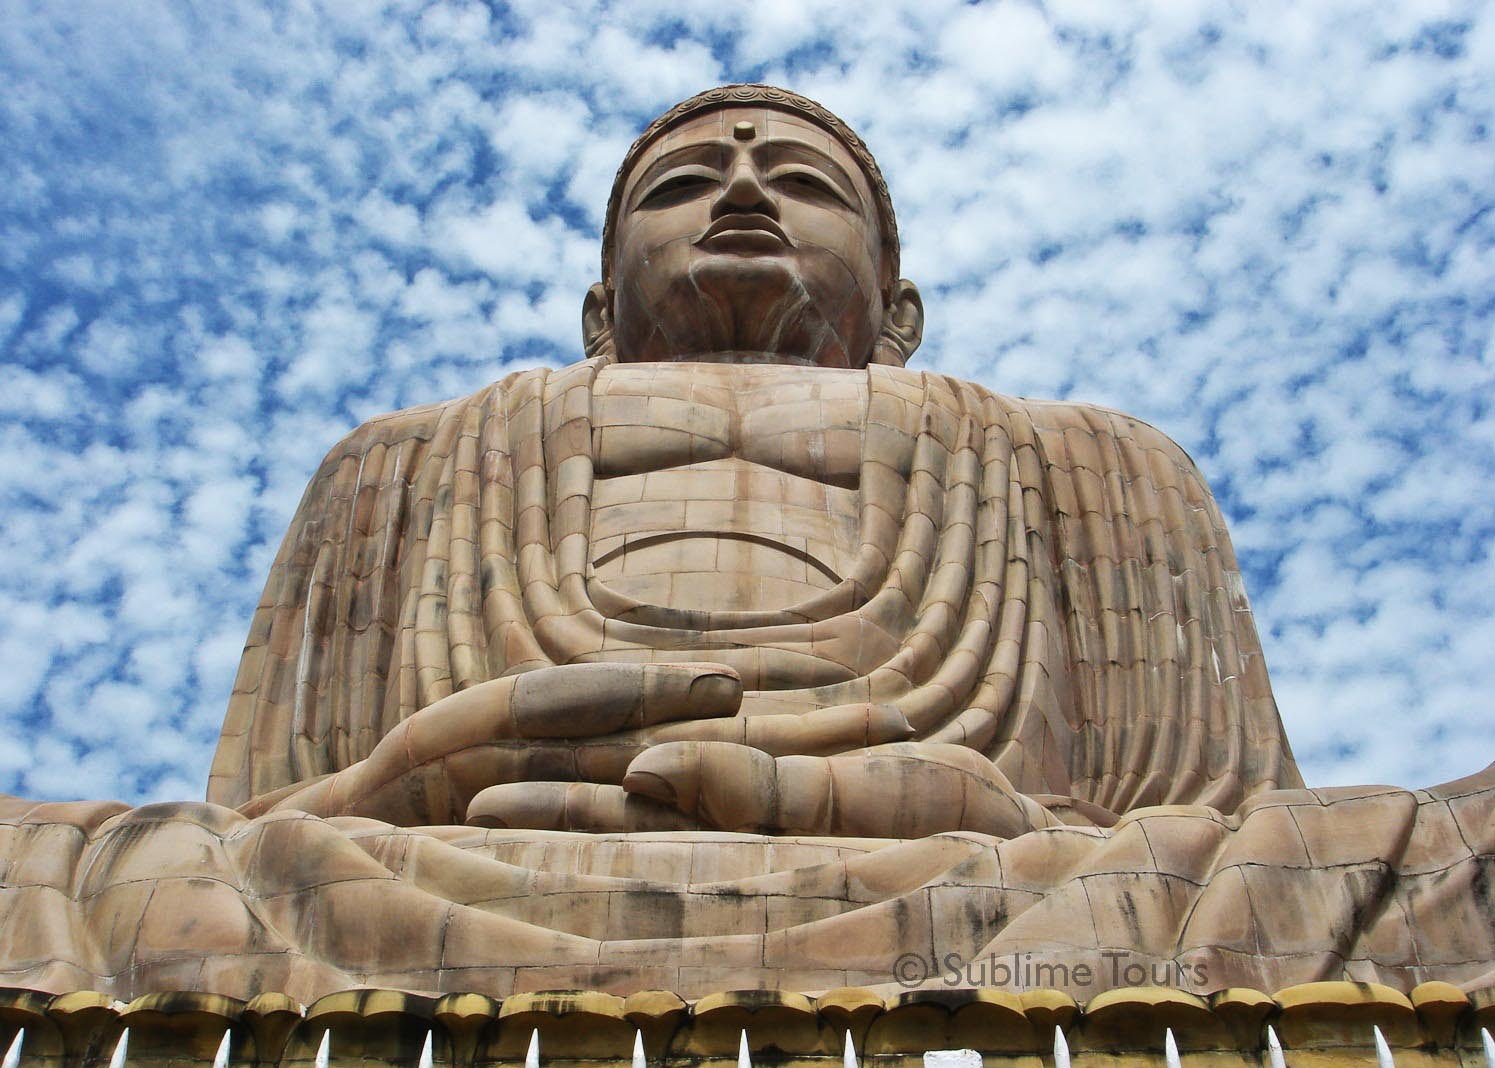 buddhist steles essay In east asia, buddhism and taoism are two of the most influential religions they influenced each other in many ways while often competing for their influences.